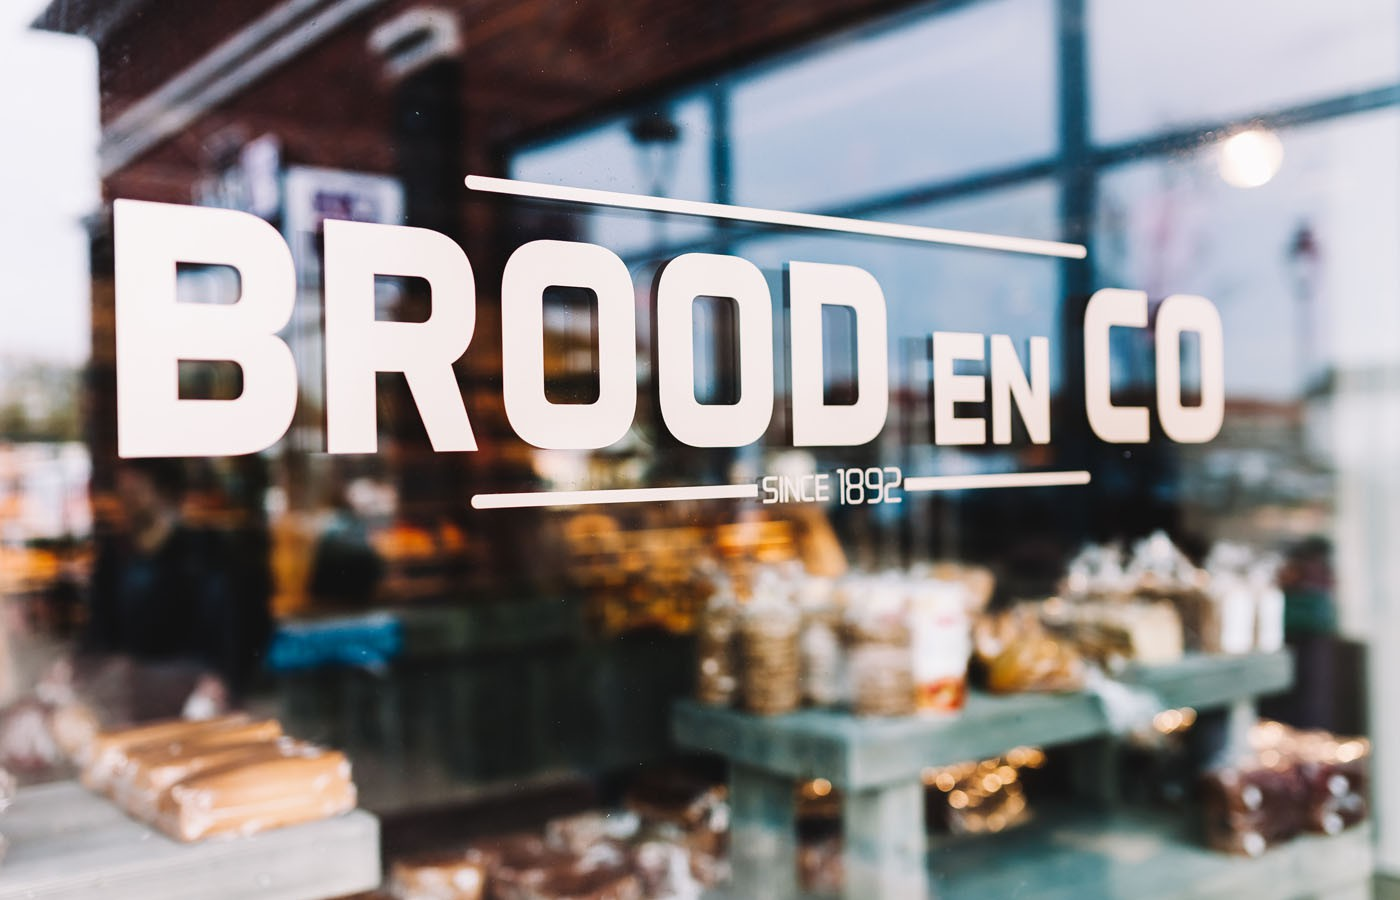 Brood en Co-14